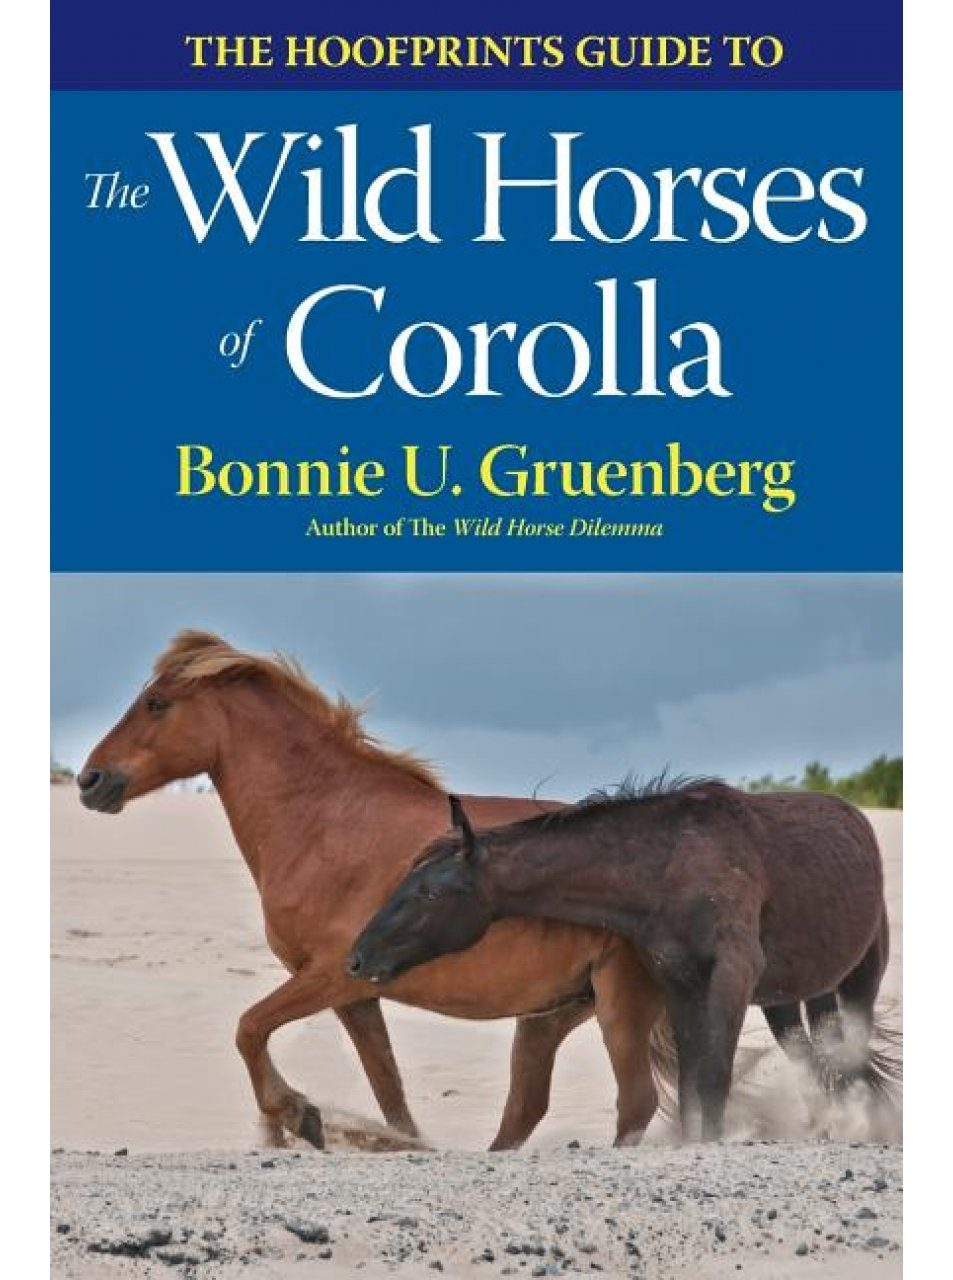 The Hoofprints Guide to the Wild Horses of Corolla, NC